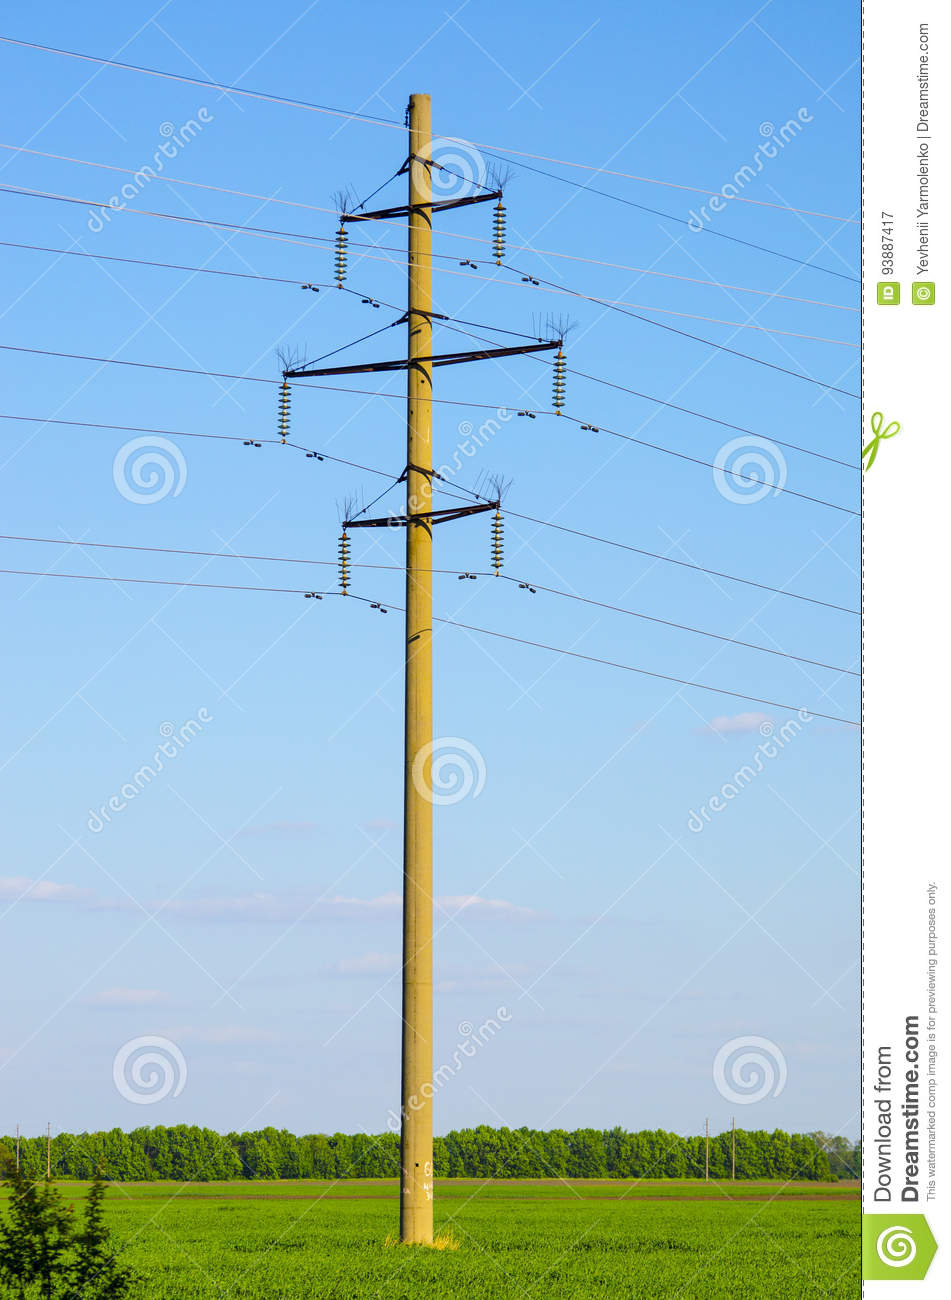 Supports for overhead power transmission lines